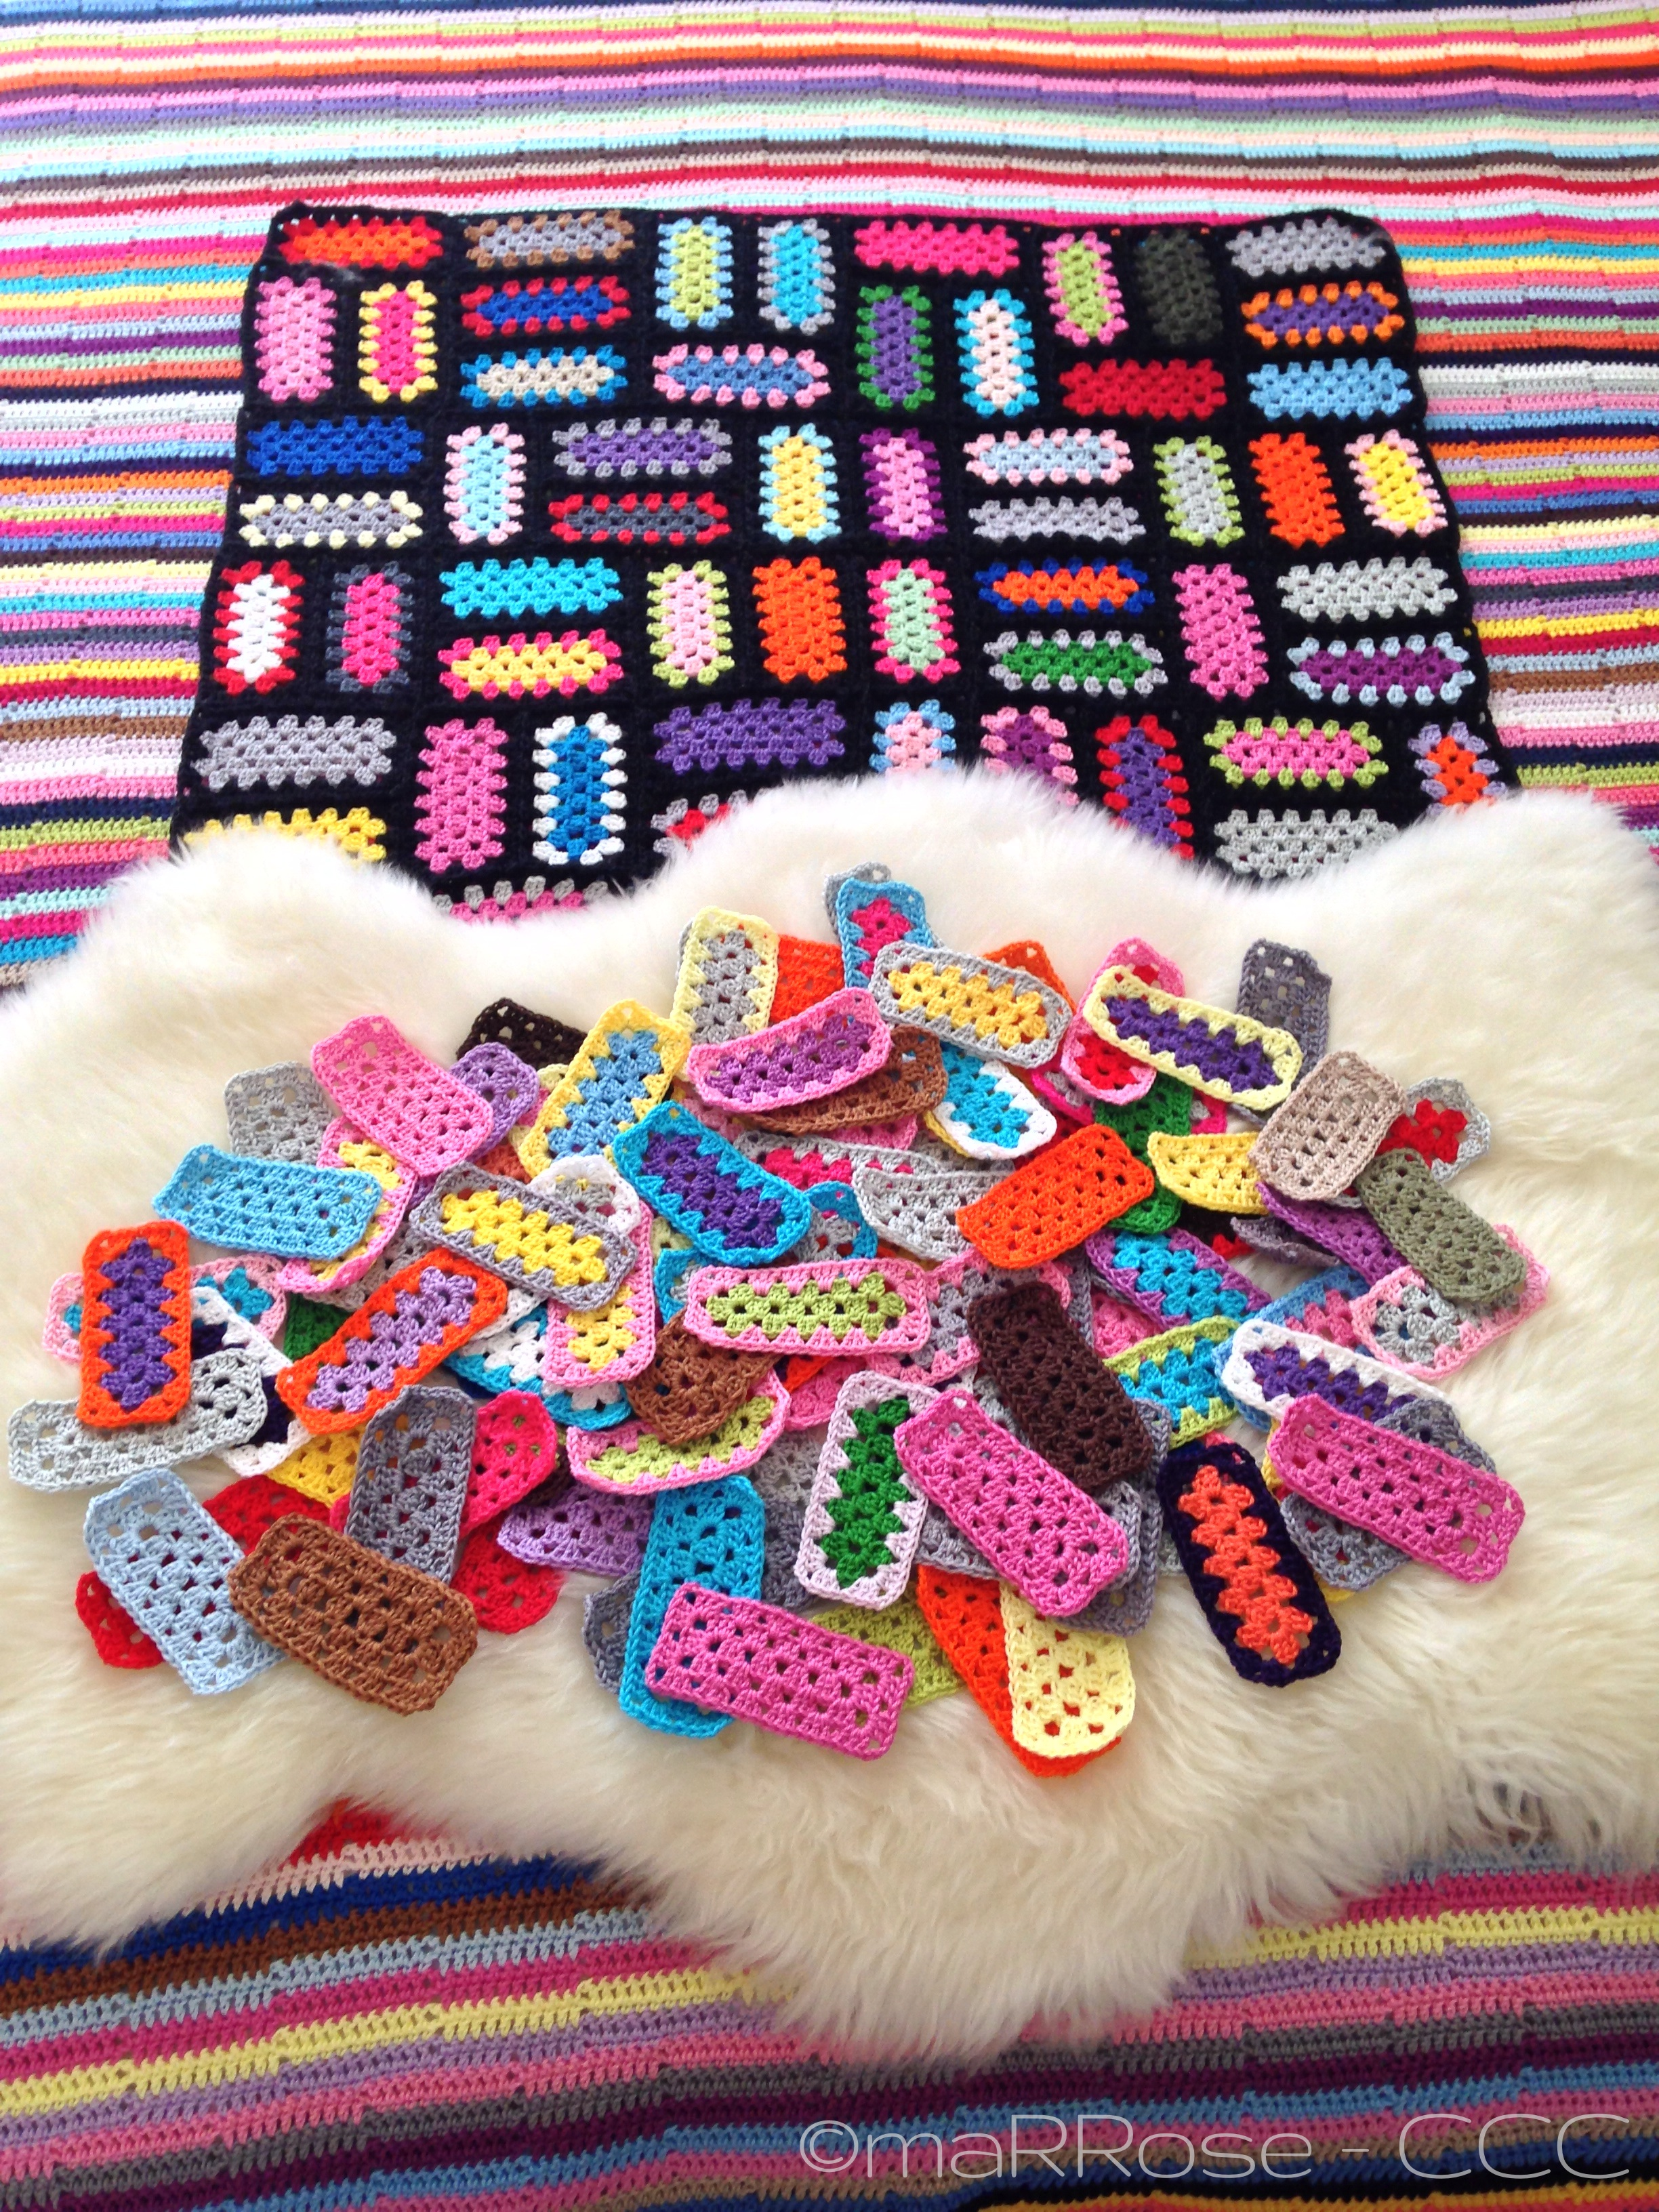 maRRose - CCC: Crochet Mood Blanket 2014